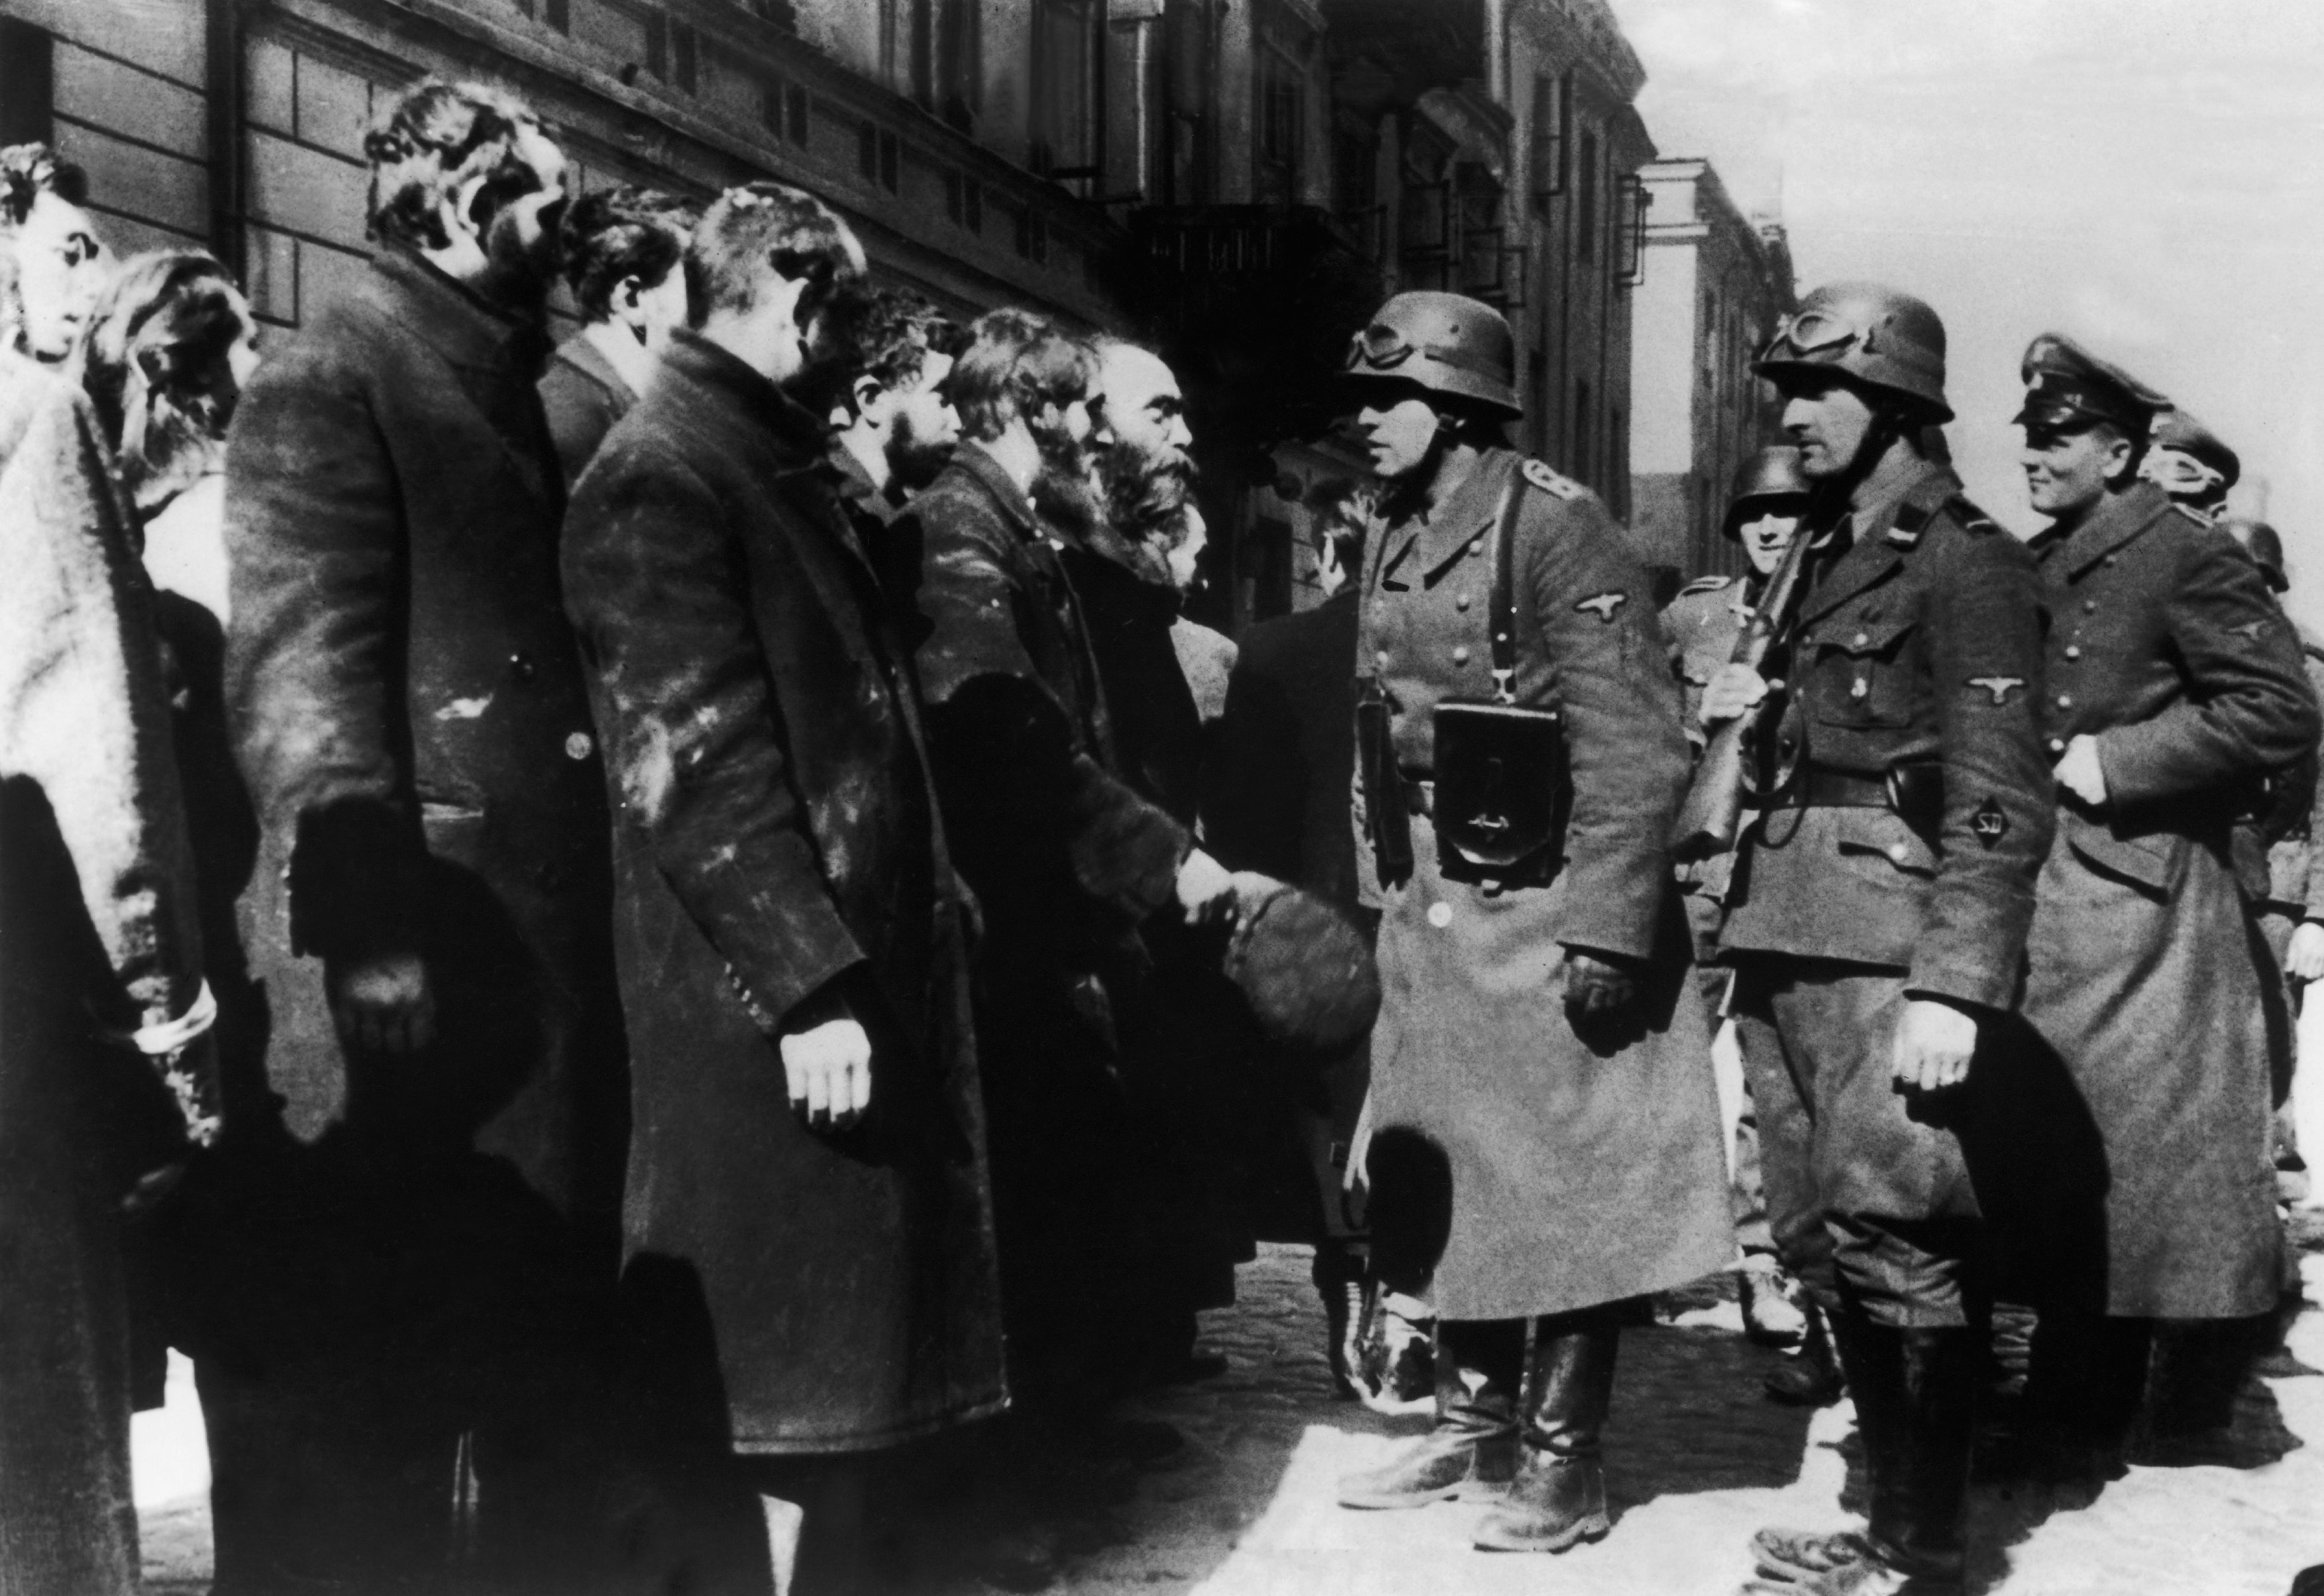 POLAND - JANUARY 02: A group of Polish Jews from Warsaw's ghetto being interrogated by Nazi officers before departing to the death camp of Treblinka, in 1943. (Photo by Keystone-France/Gamma-Keystone via Getty Images)